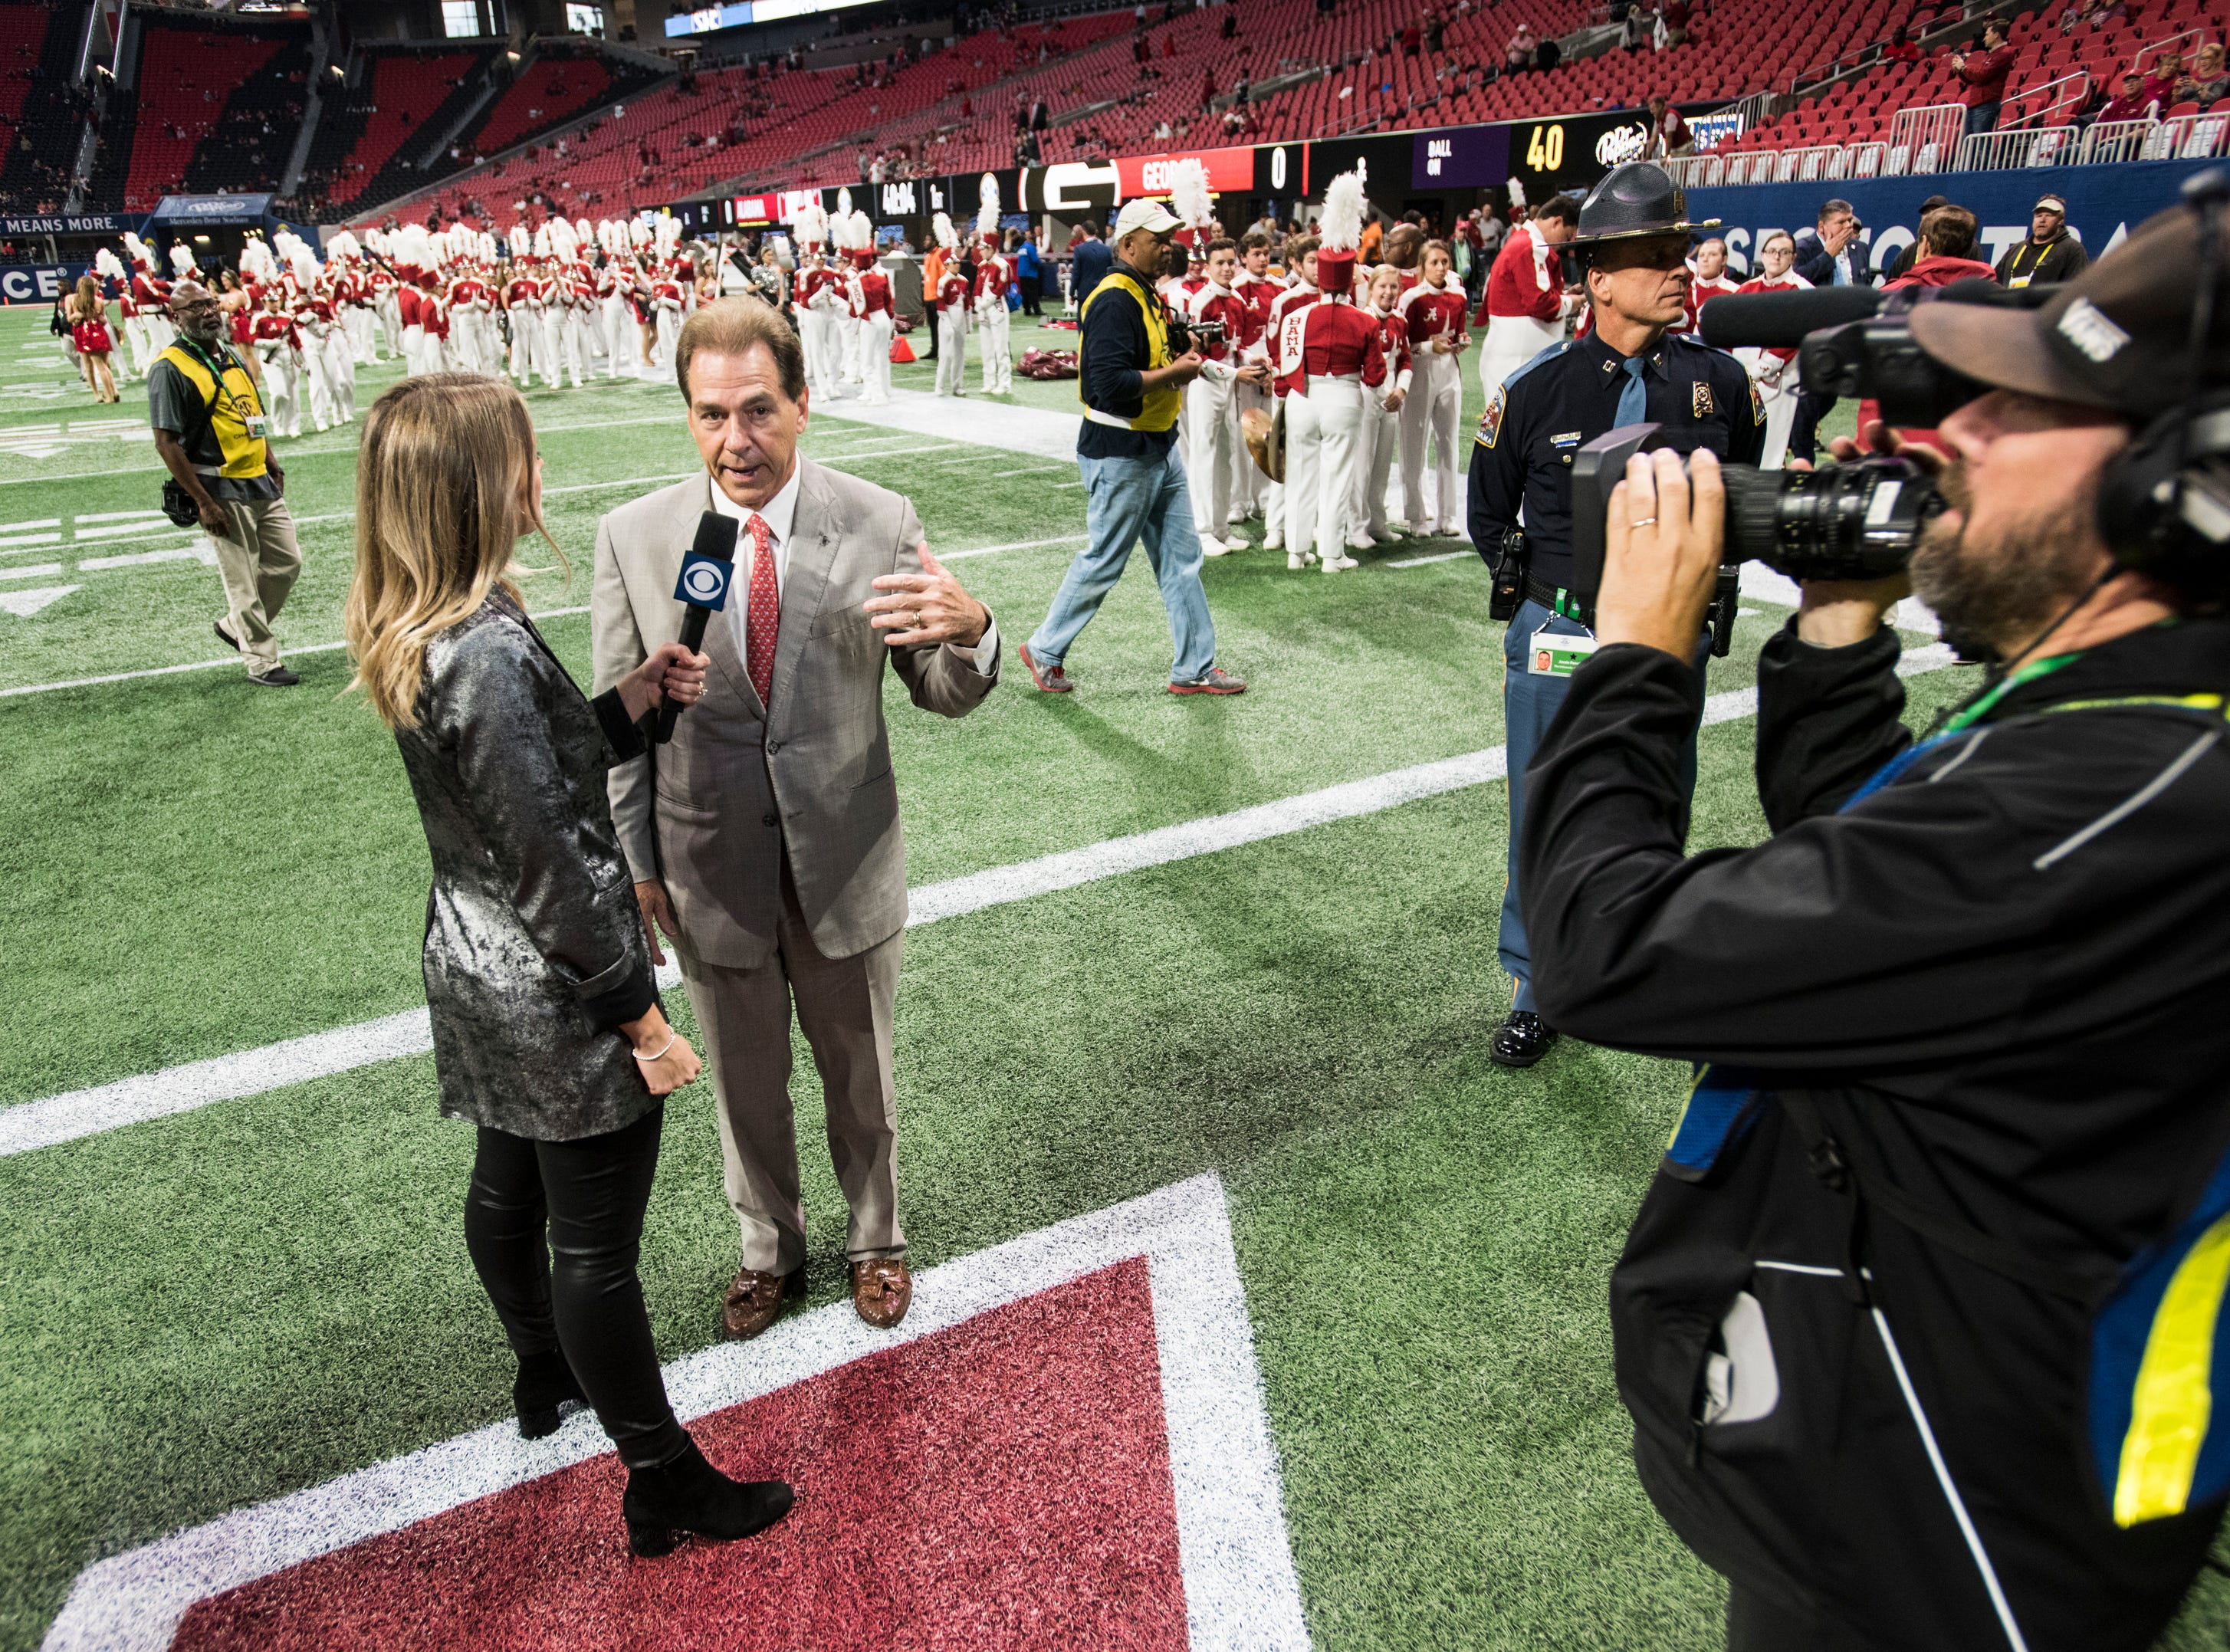 Alabama head coach Nick Saban is interviewed before the SEC Championship game at Mercedes-Benz Stadium in Atlanta, Ga., on Saturday Dec. 1, 2018.